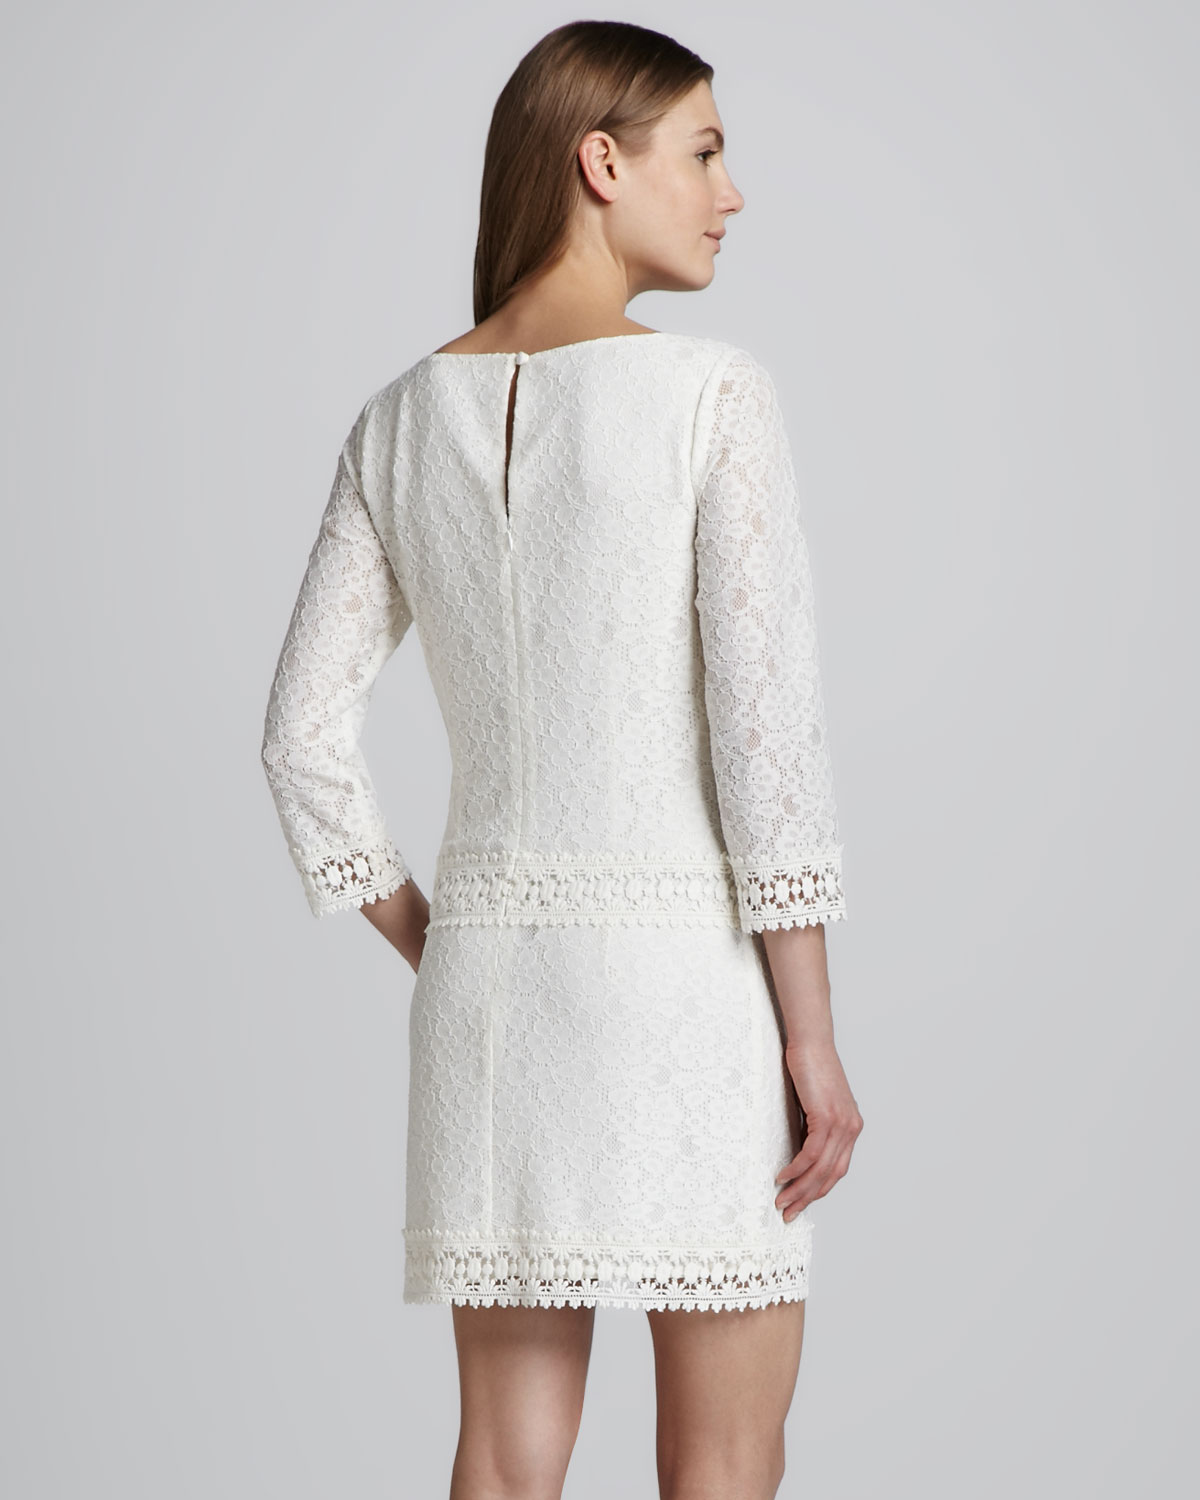 2146244409a2 Laundry by Shelli Segal Jewelneck Lace Dress in Natural - Lyst